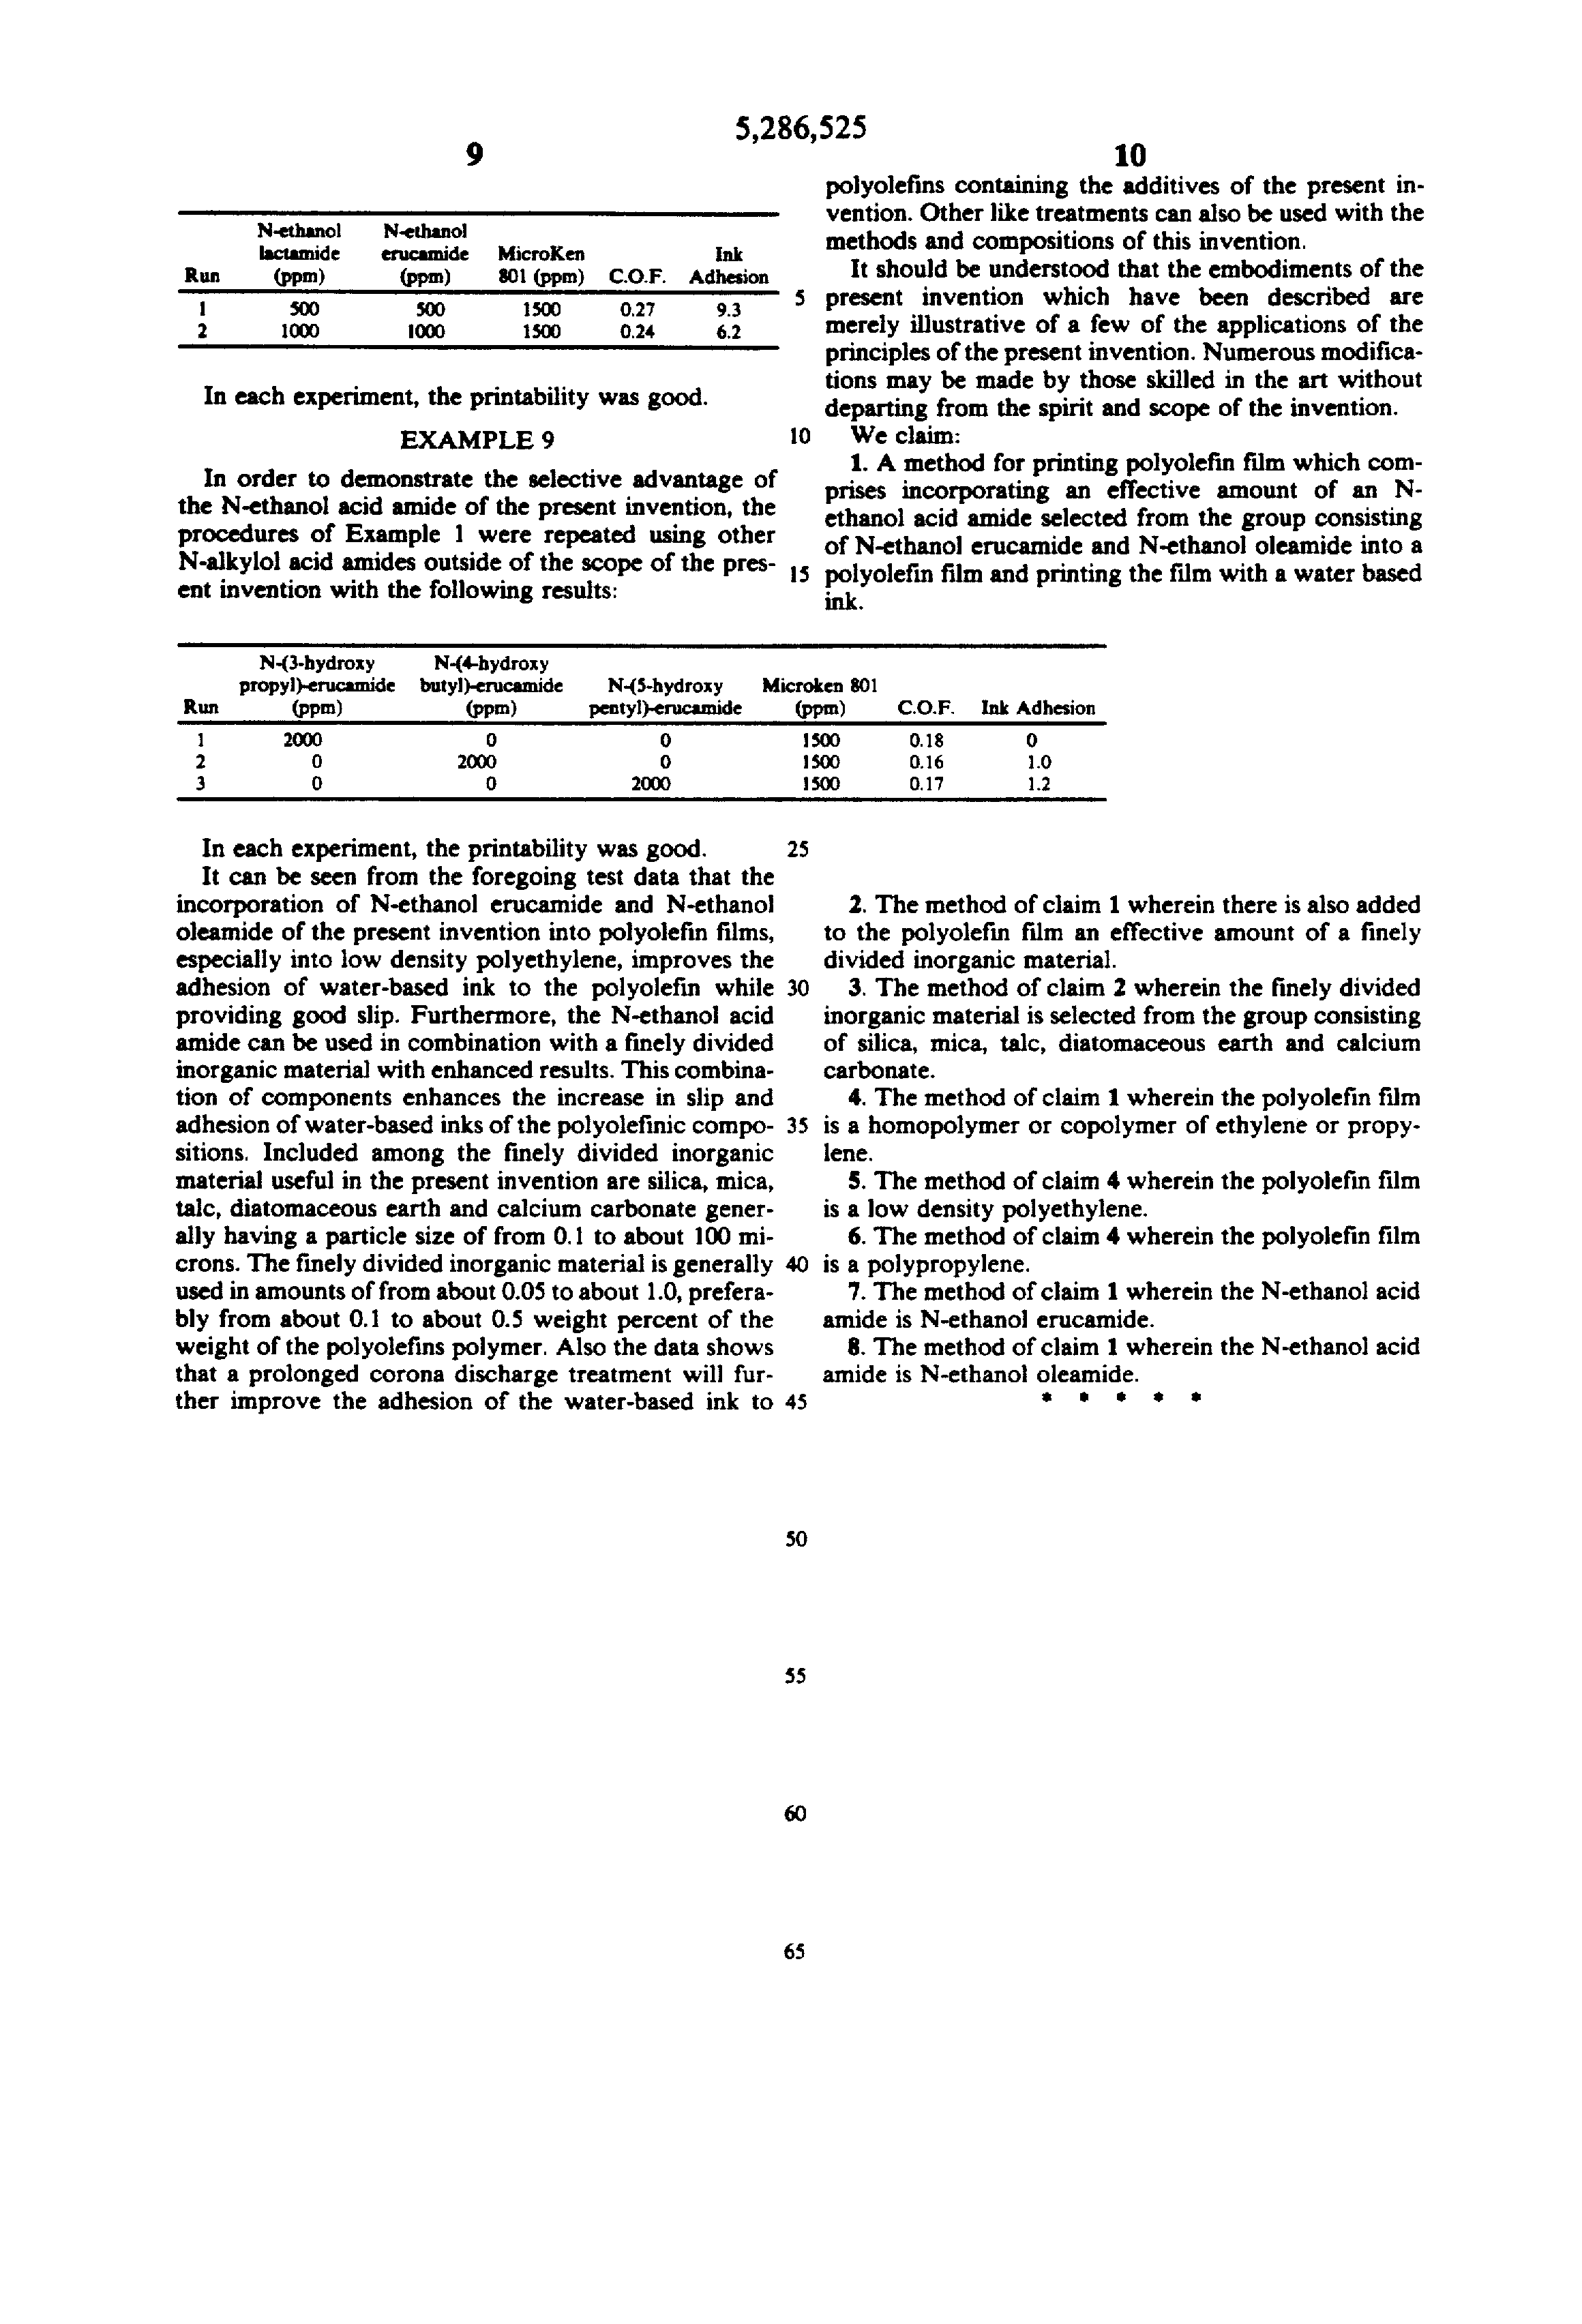 US 5286525 A - Method Of Improving The Printing Of Polyolefins With